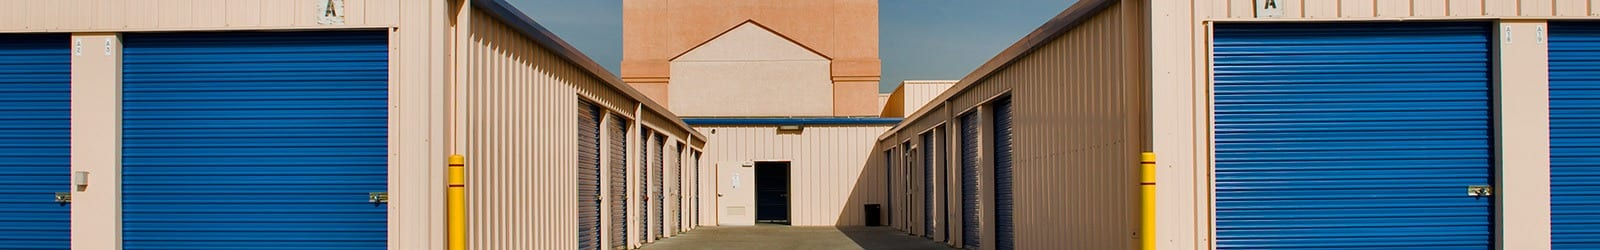 Otay Mesa Self Storage has many great features!